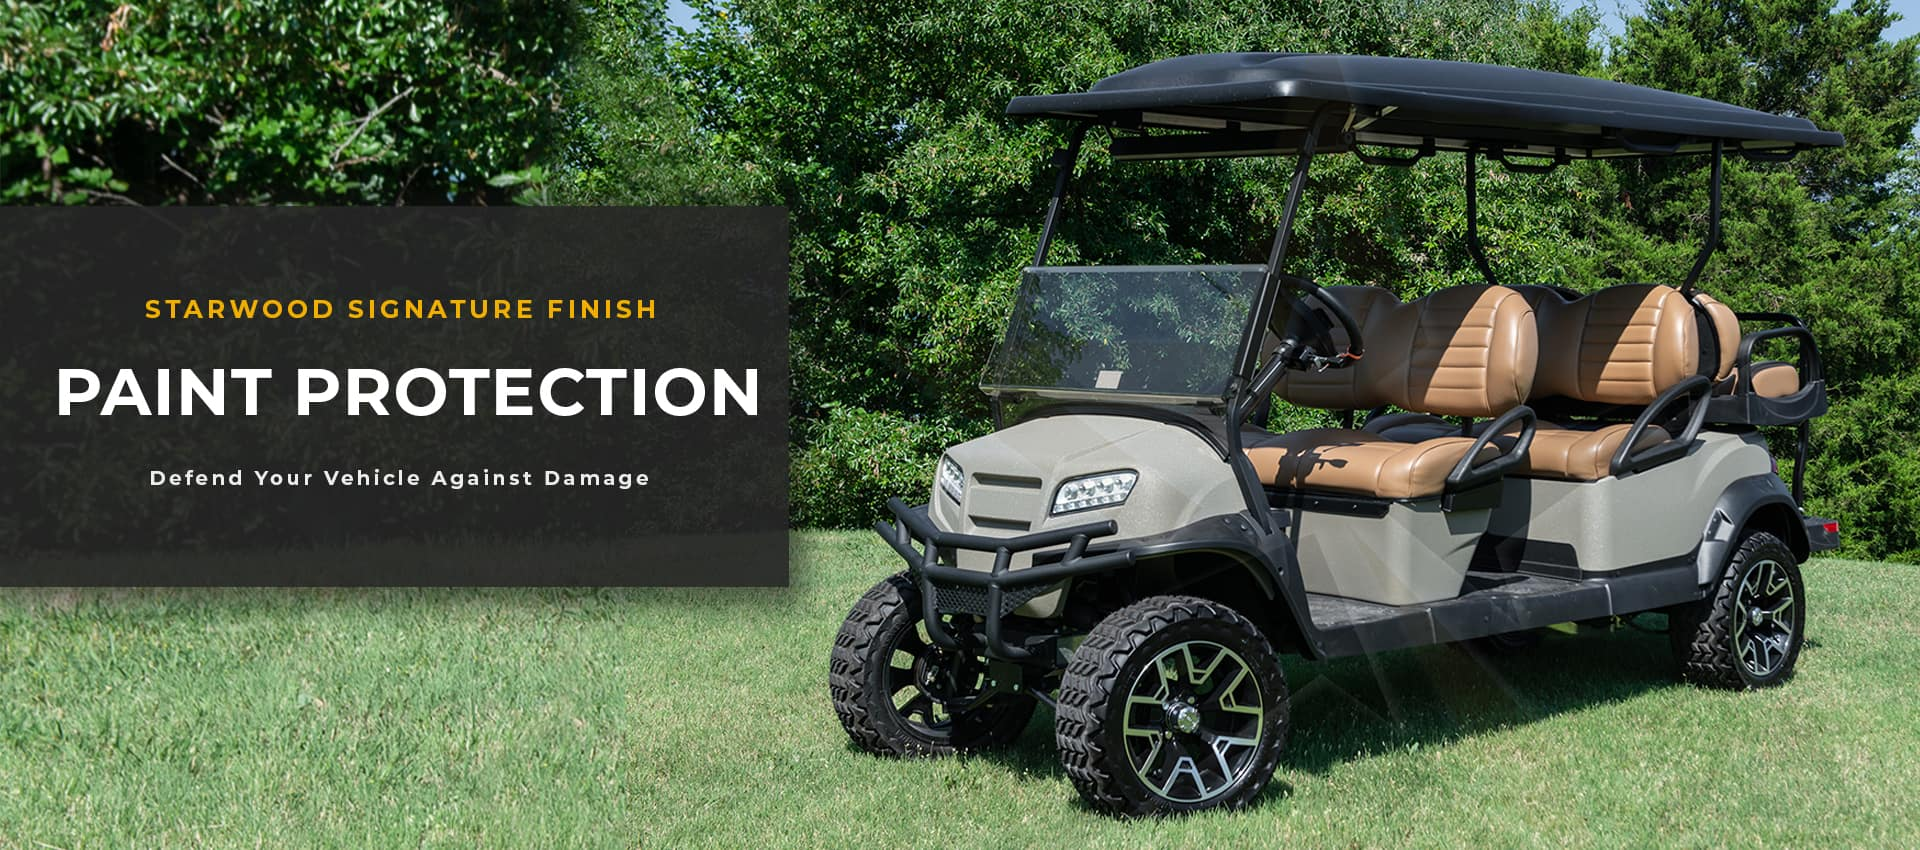 golf cart paint protection